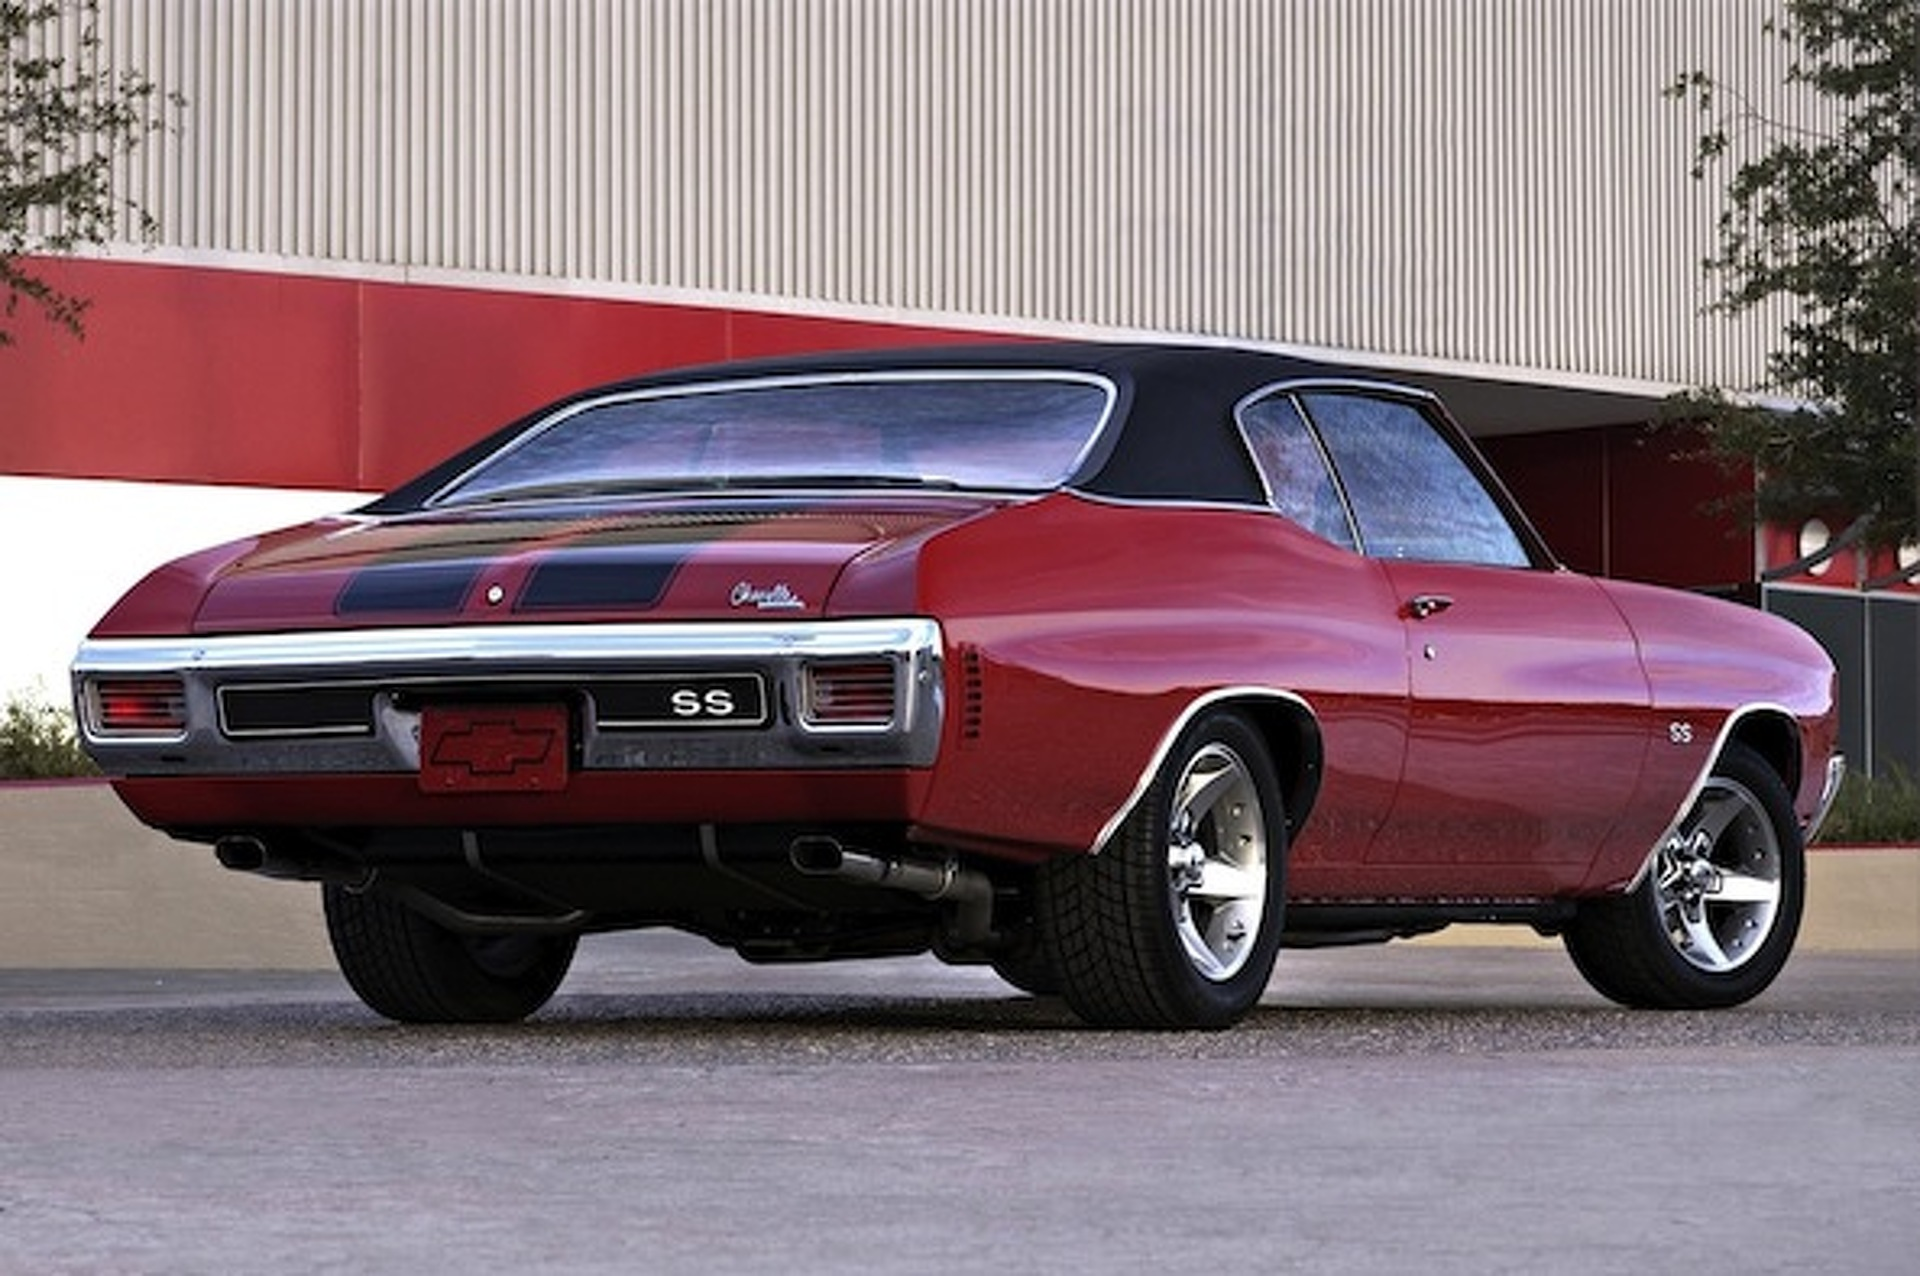 Chevrolet Bringing Back Chevelle?